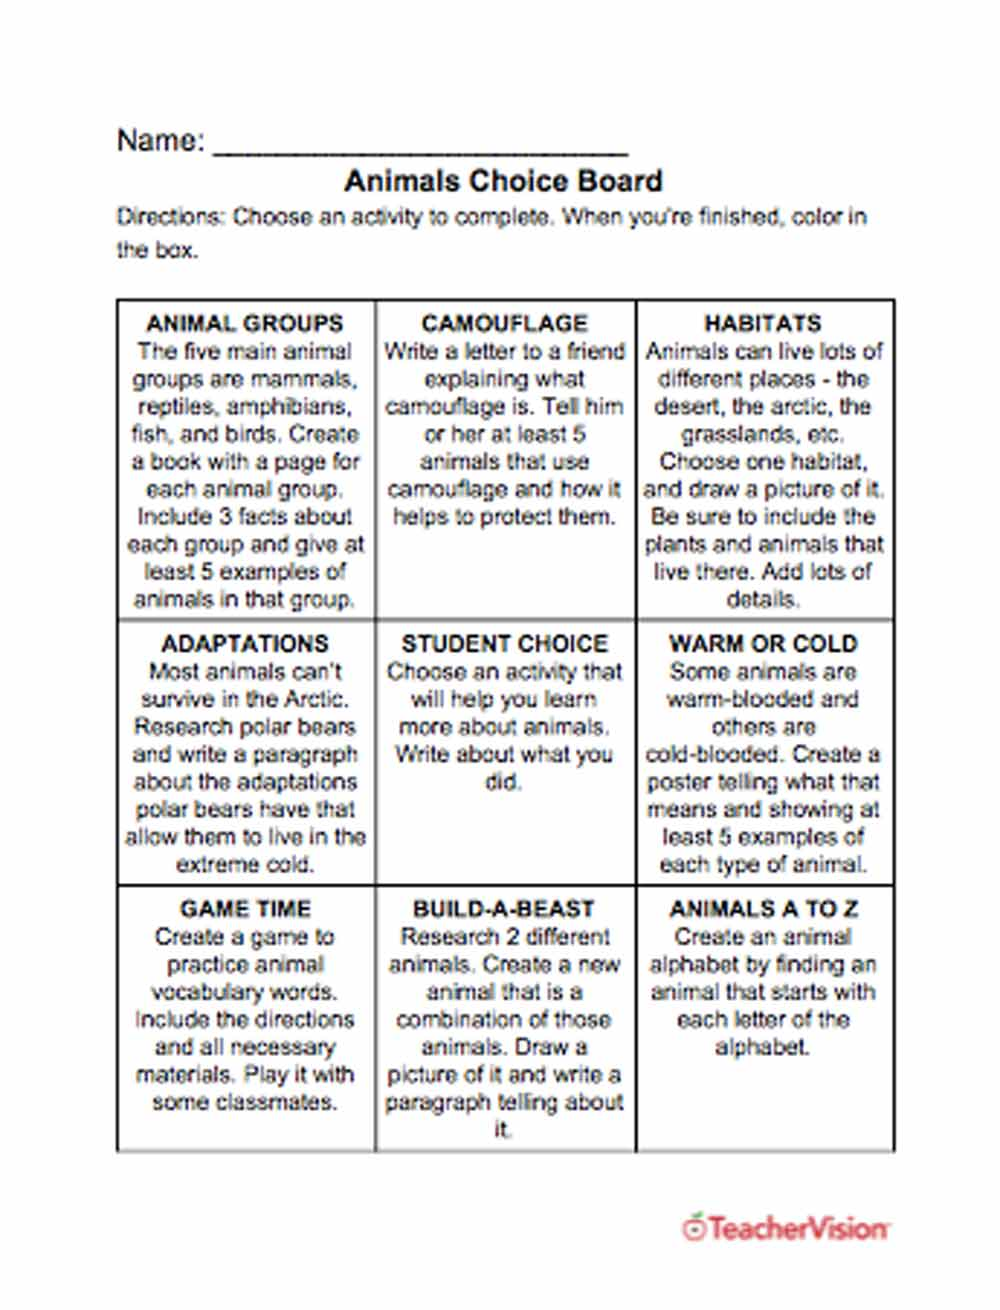 Animals Choice Board